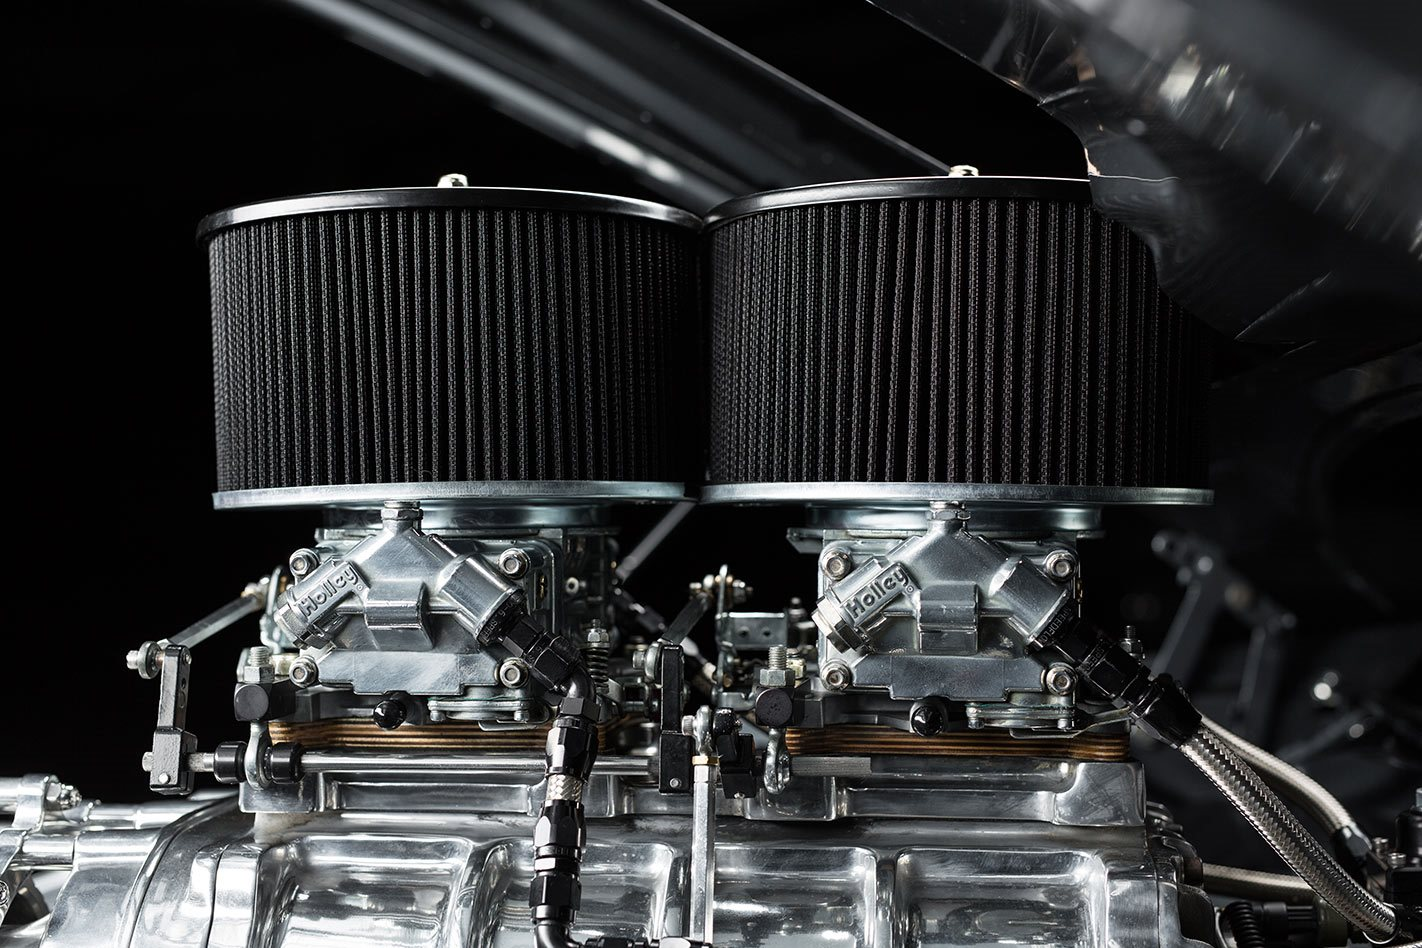 Holden Commodore VN SS engine